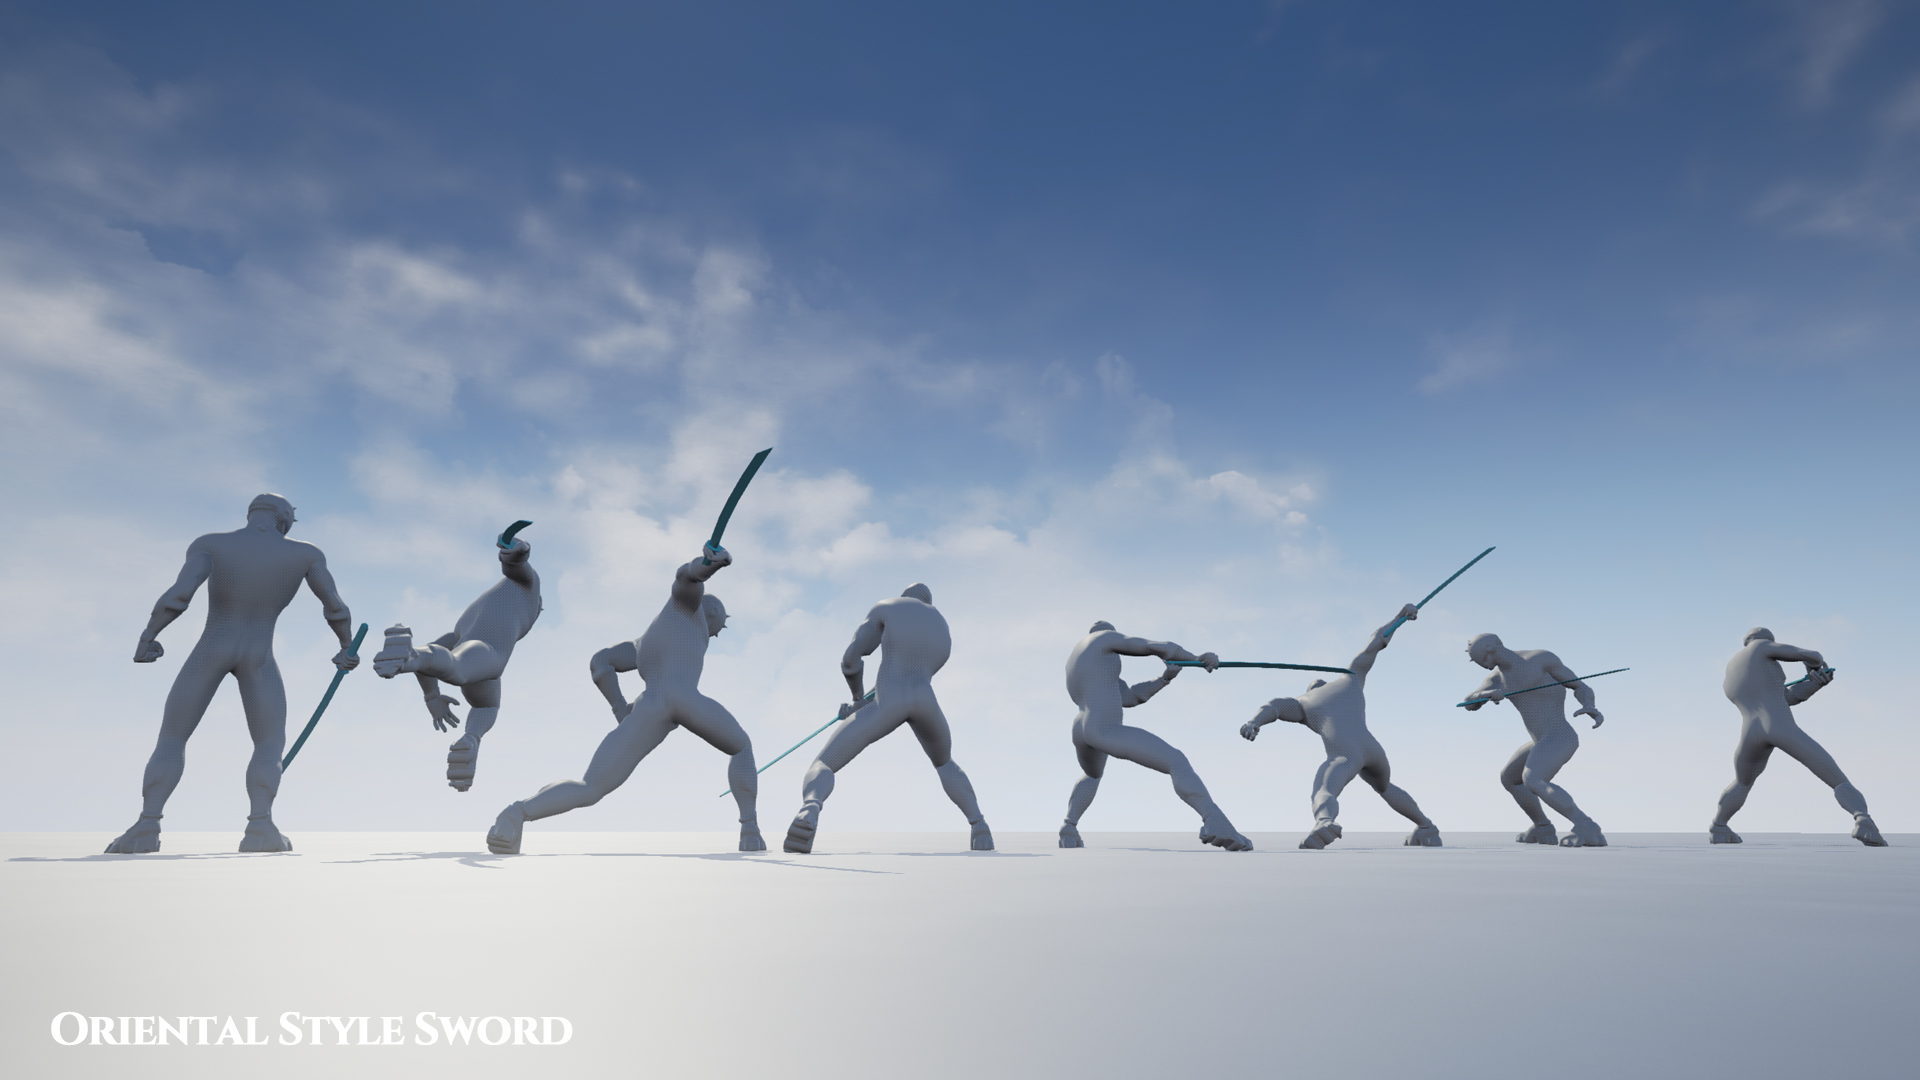 Oriental Sword Animation Set by wemakethegame in Animations